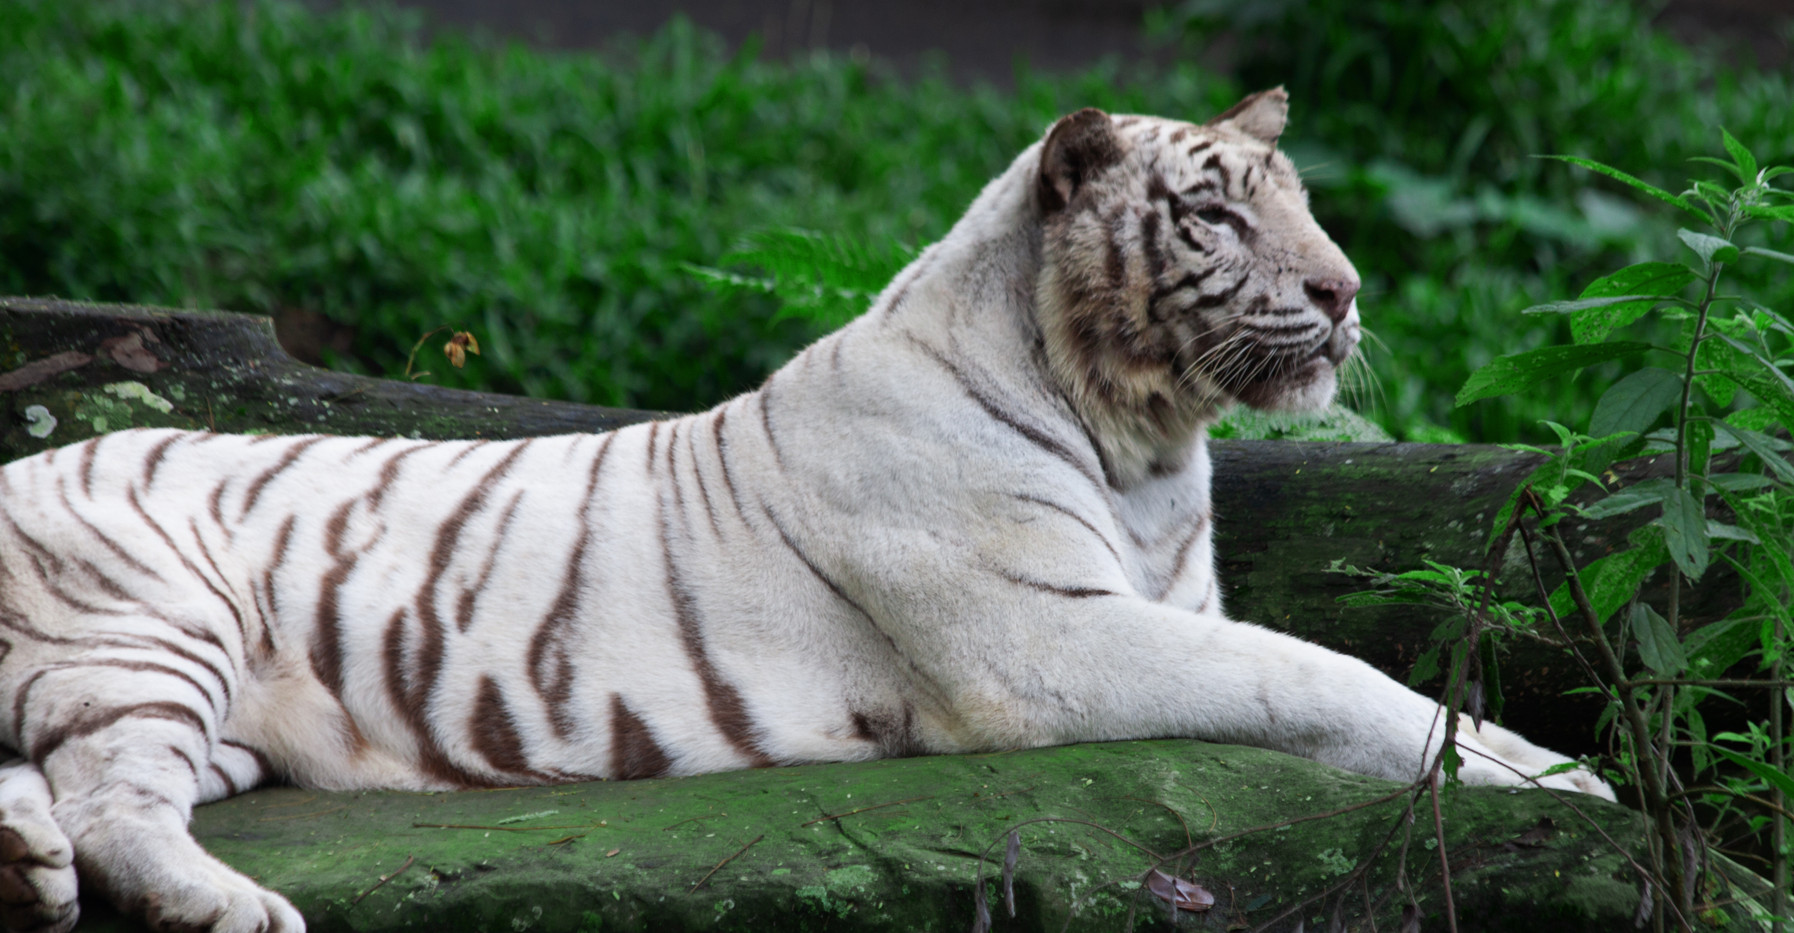 An Albino Tiger